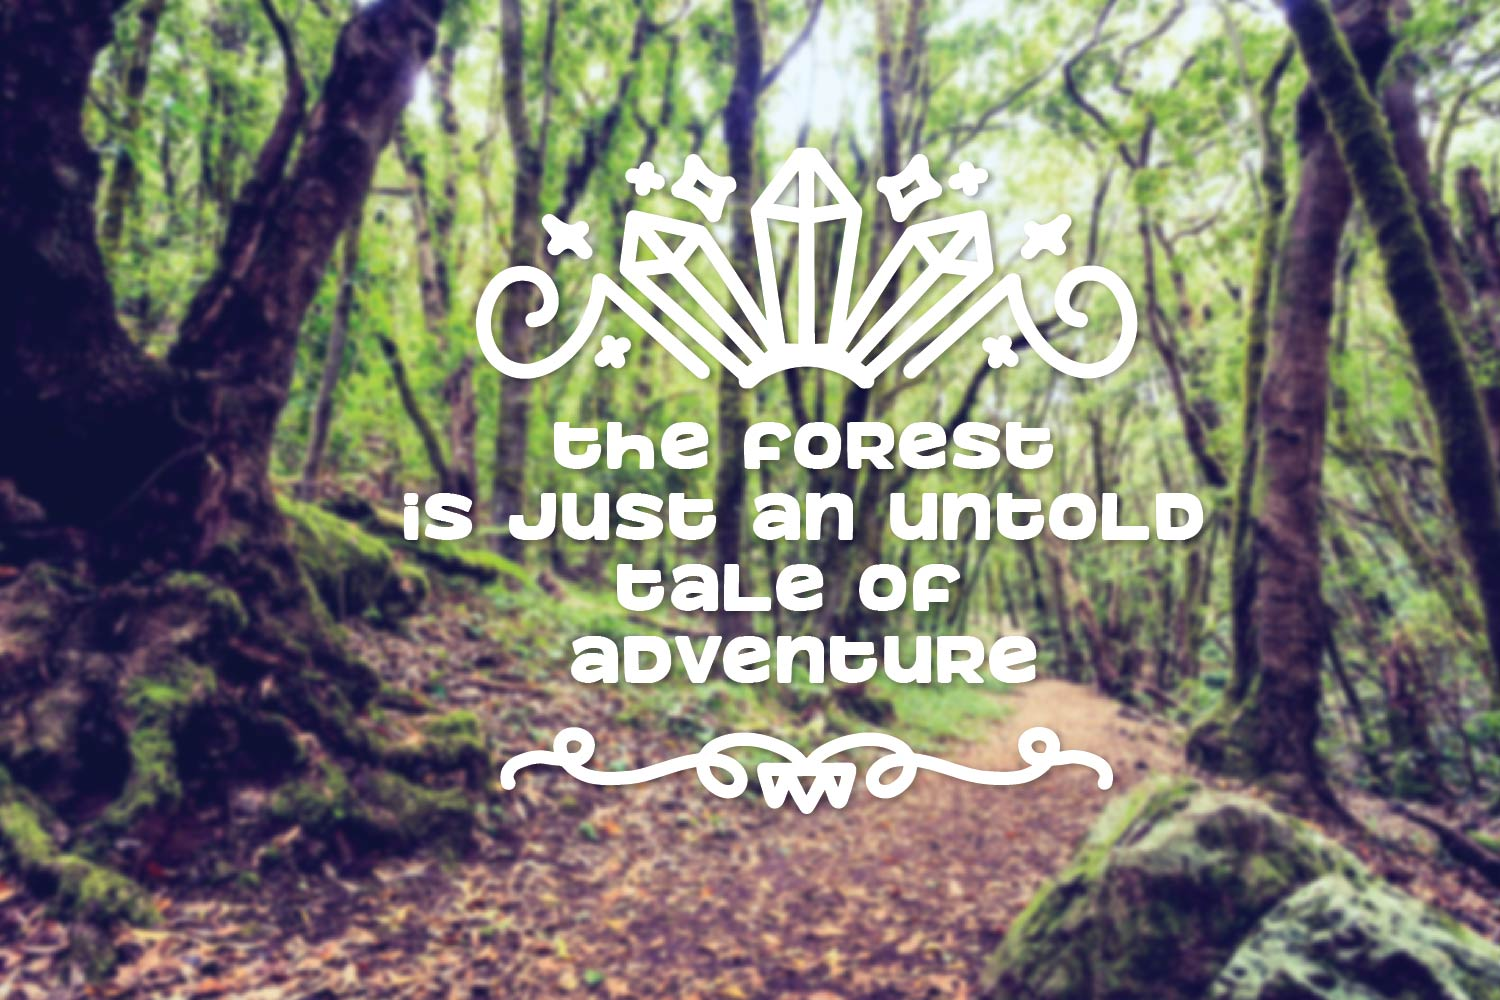 Storybook Banners - A Dingbat Font Full of Magical Borders example image 3